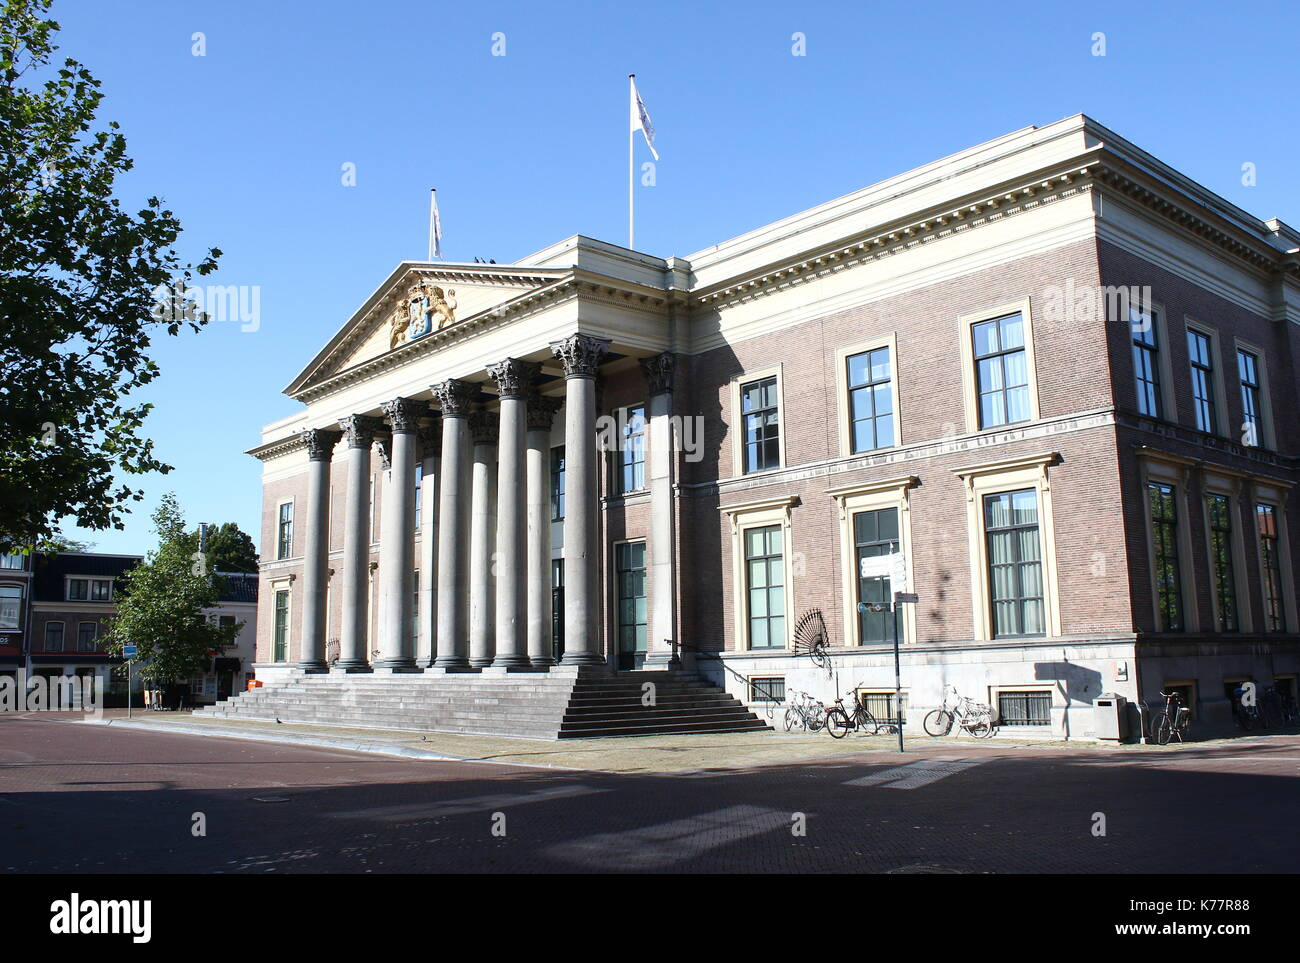 19th century court of Justice (Gerechtshof Leeuwarden), at central Zaailand square in Leeuwarden,  Friesland, The Netherlands - Stock Image